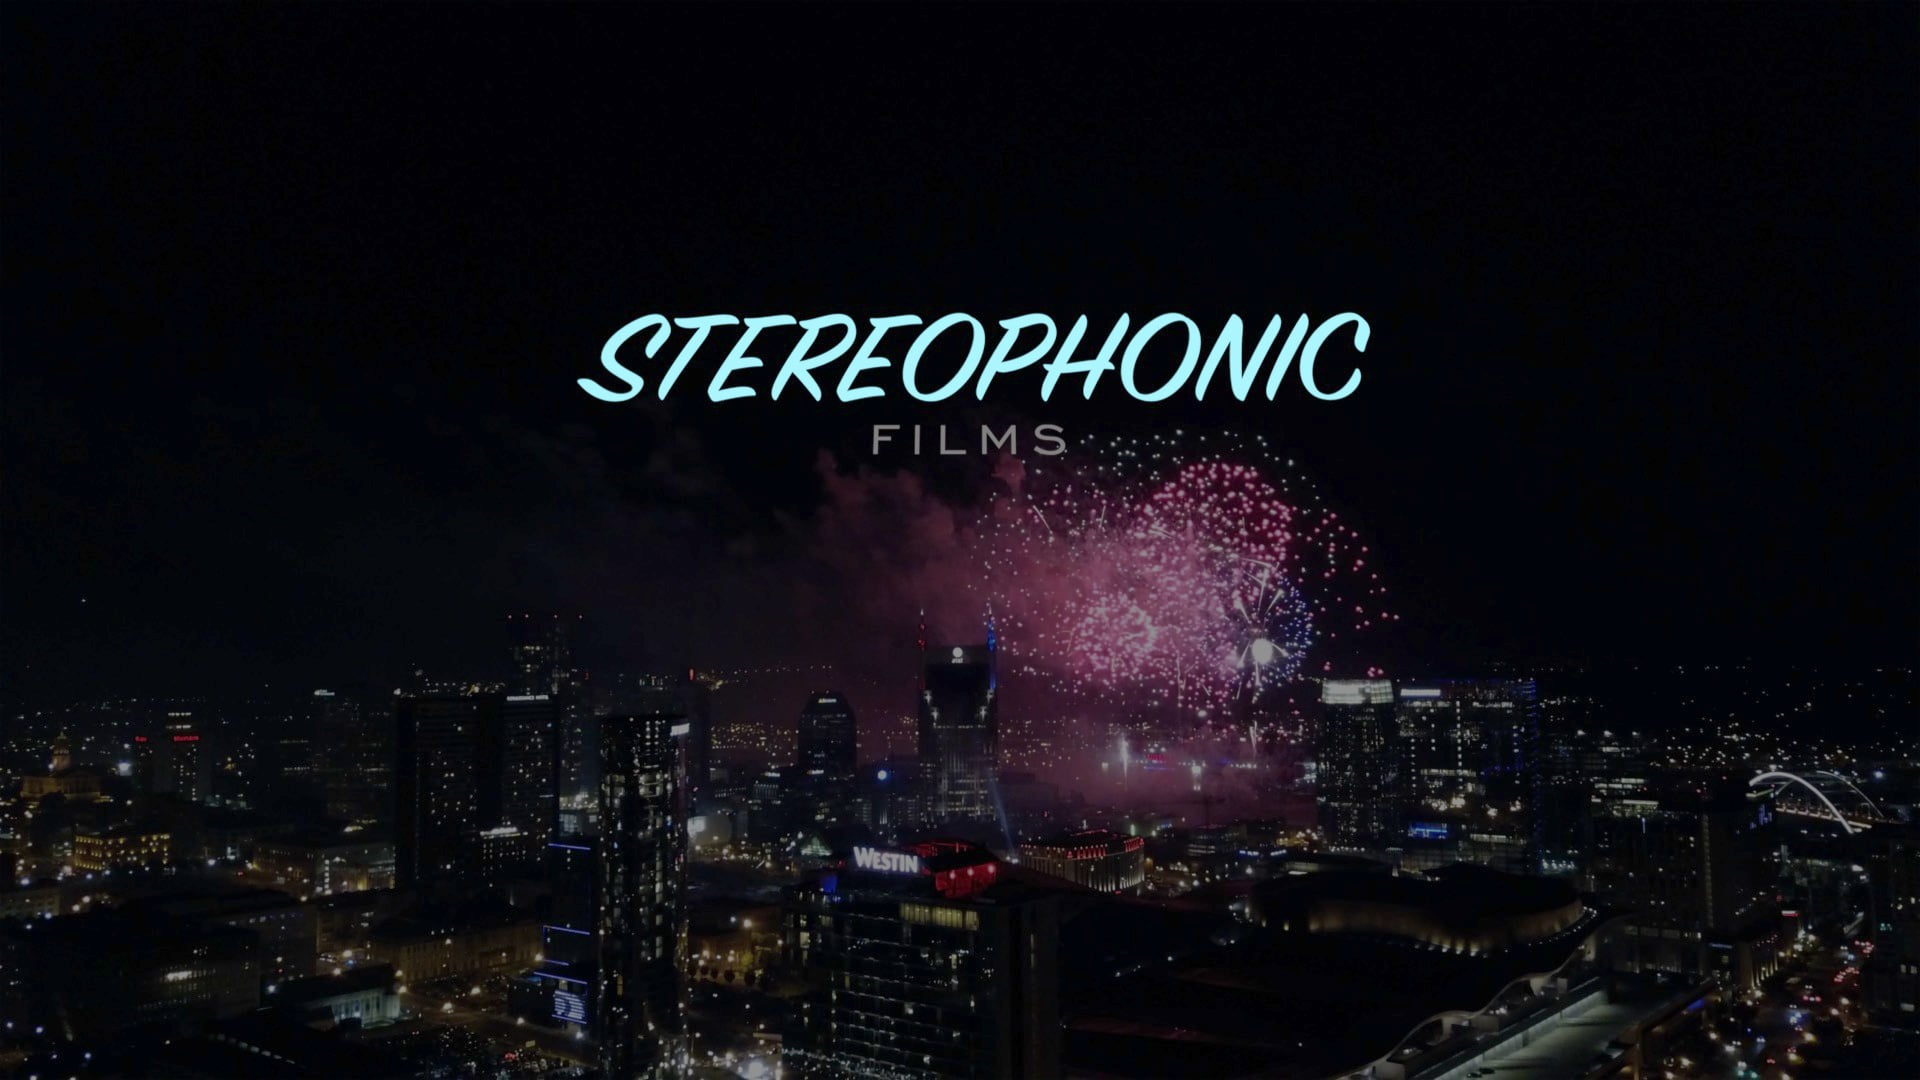 Stereophonic Films Commercial